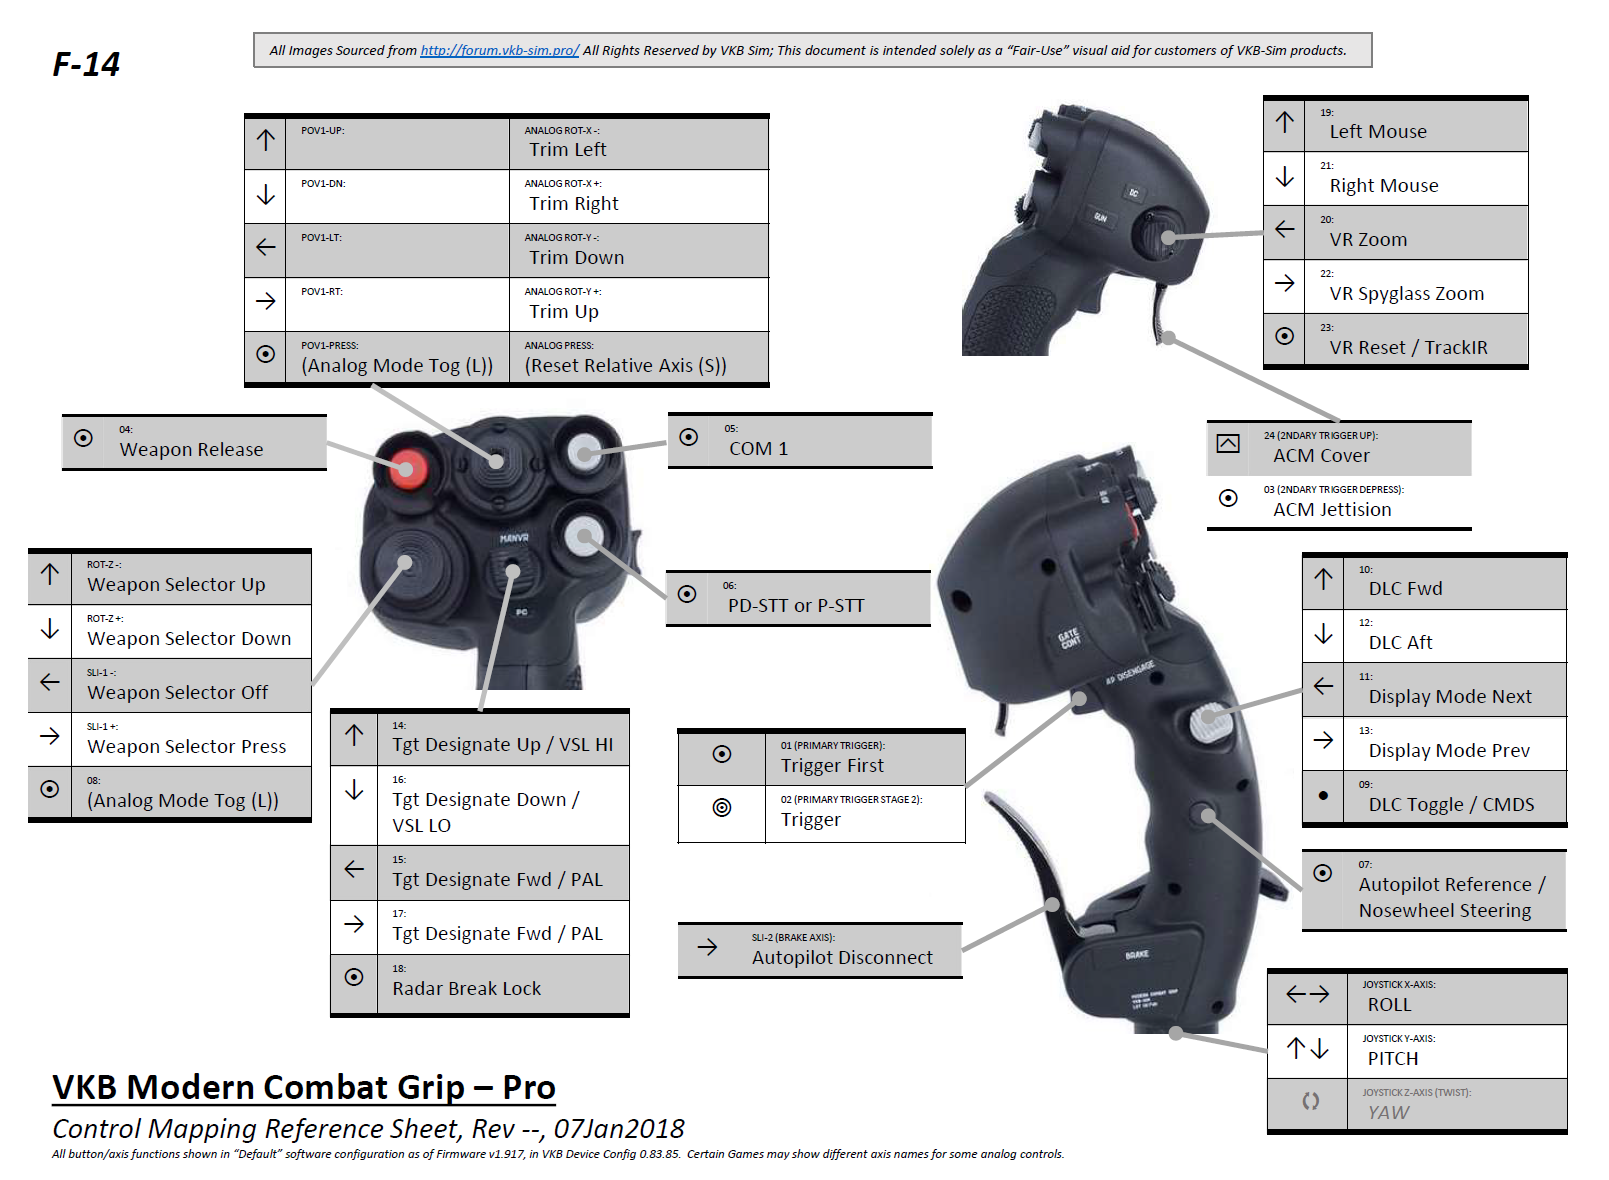 Profile VKB Modern Combat Grip Pro (MCG Pro) & Warthog Throttle for F-14